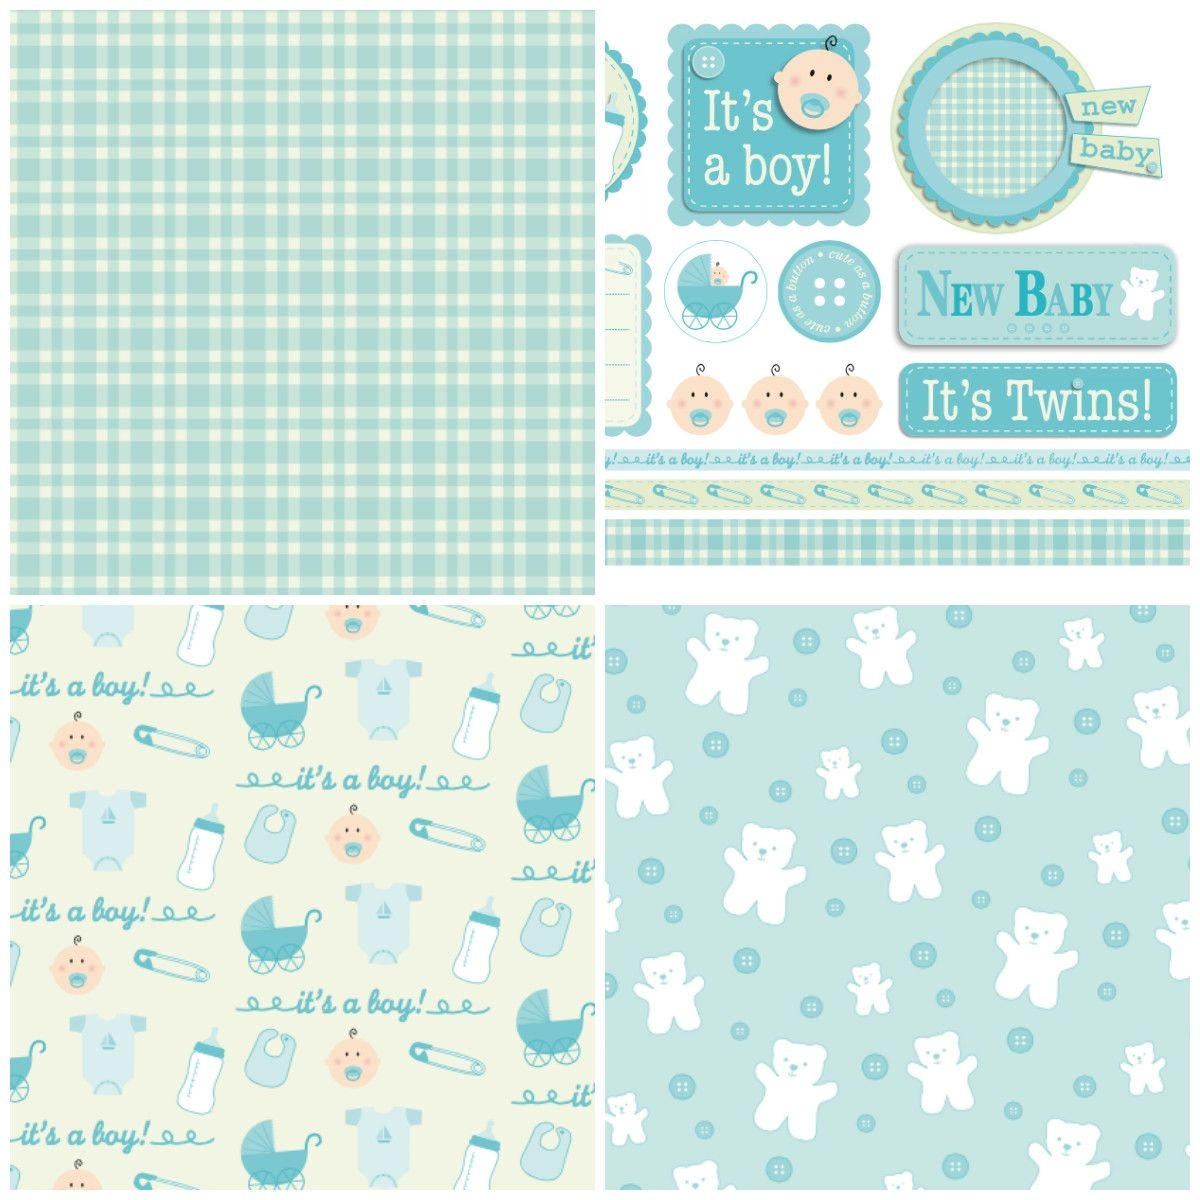 Handmade For Babies – Free Papers | Printable Papers | Digital Paper - Free Online Digital Scrapbooking Printable